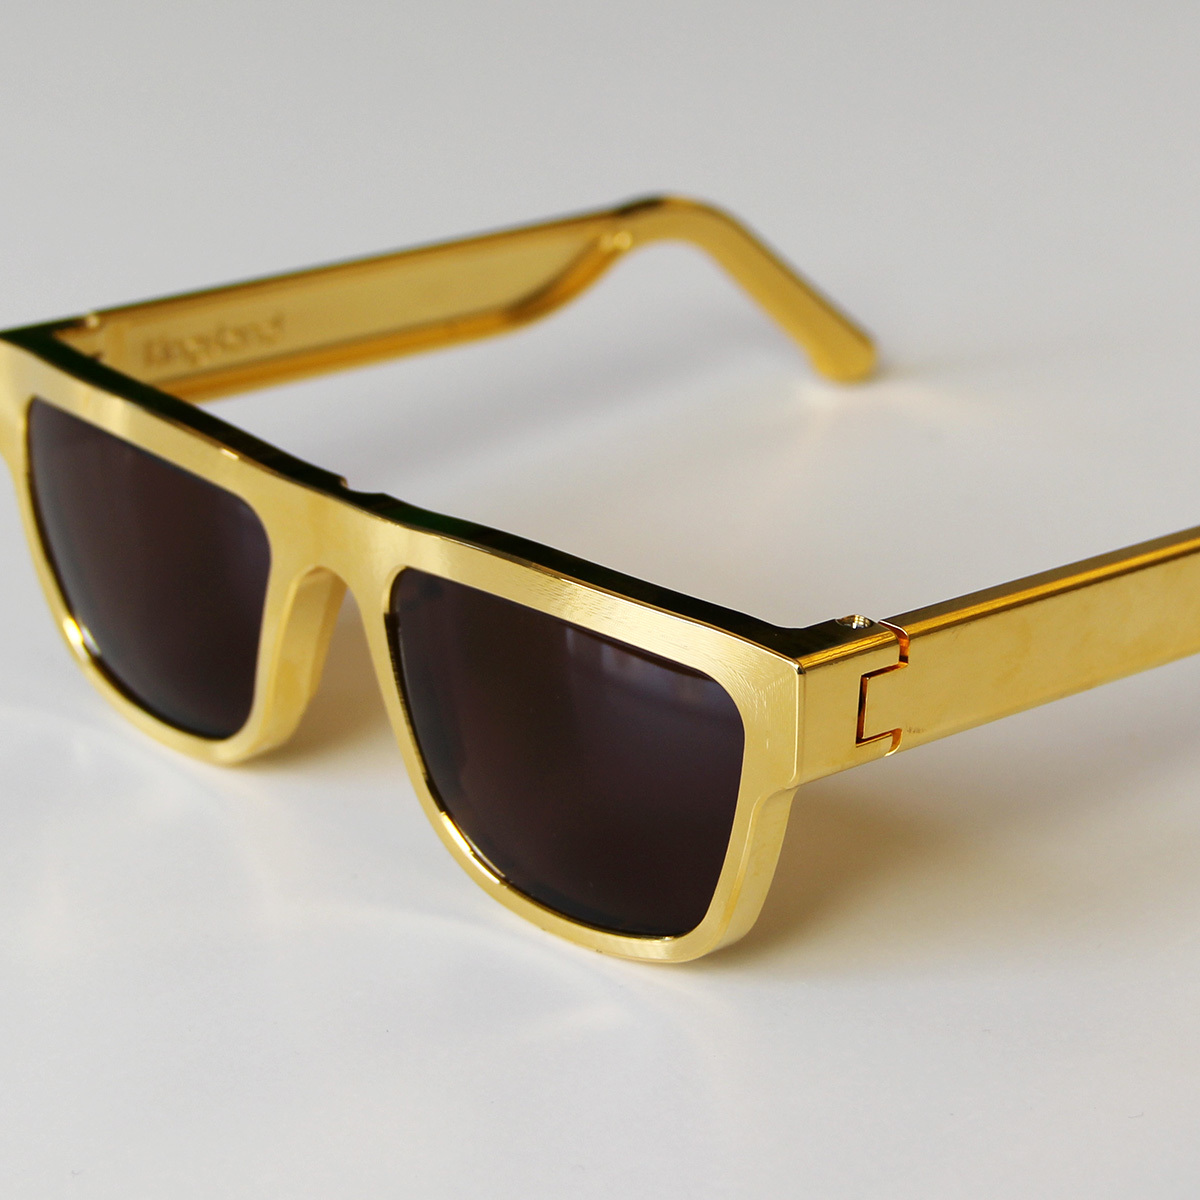 Gold Plated Glasses Frames : Gold-Plated Sunglasses - Cool Hunting